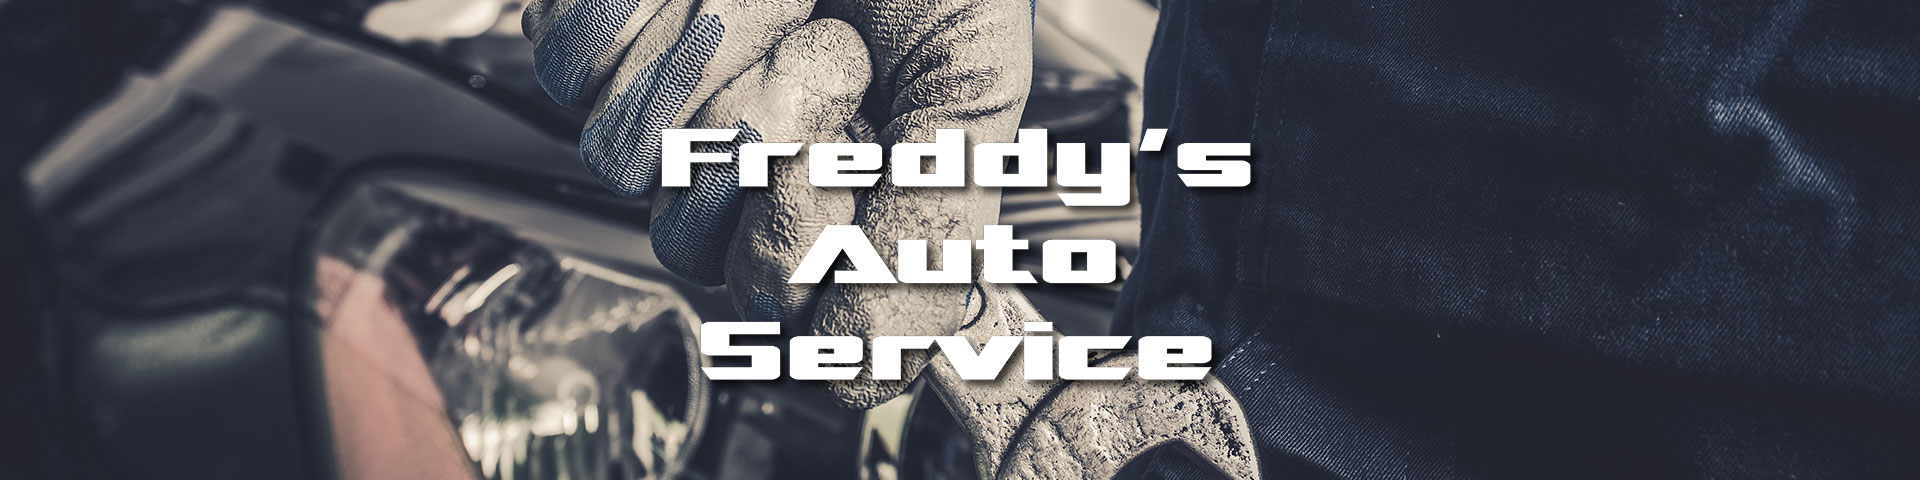 Autoservice in Clovis, NM